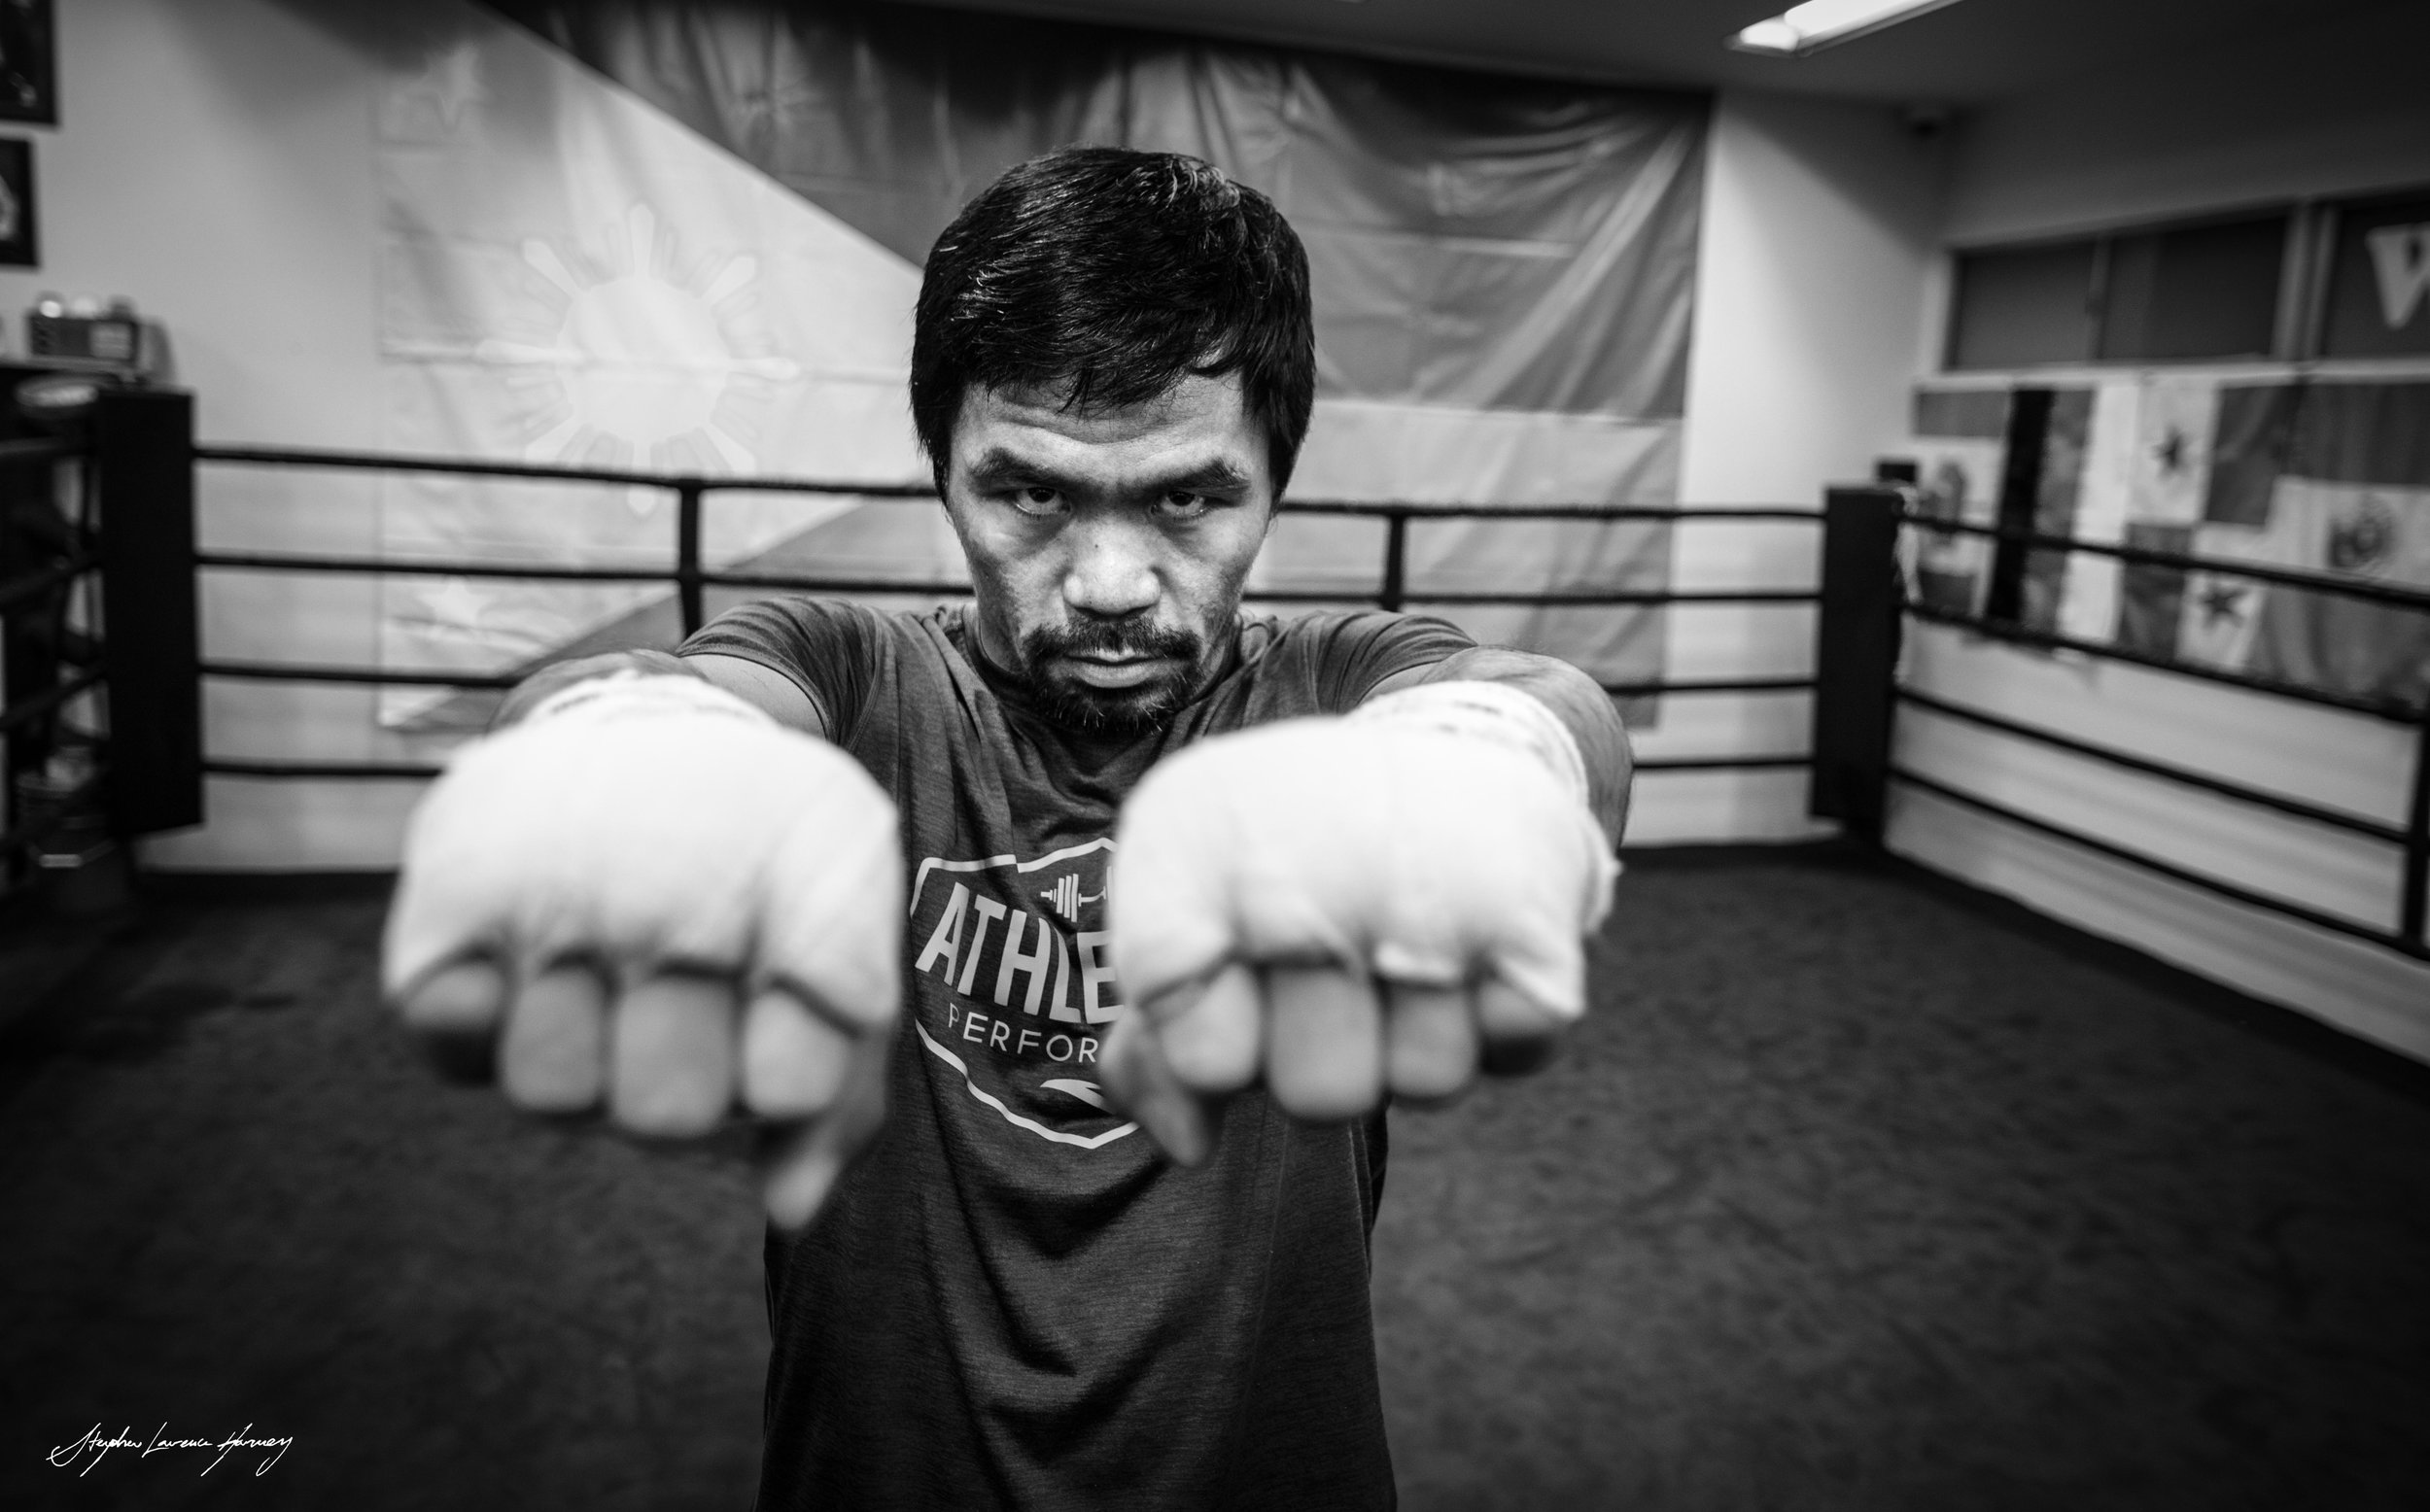 DEFIANT - THE MANNY PACQUIAO OBSESSION